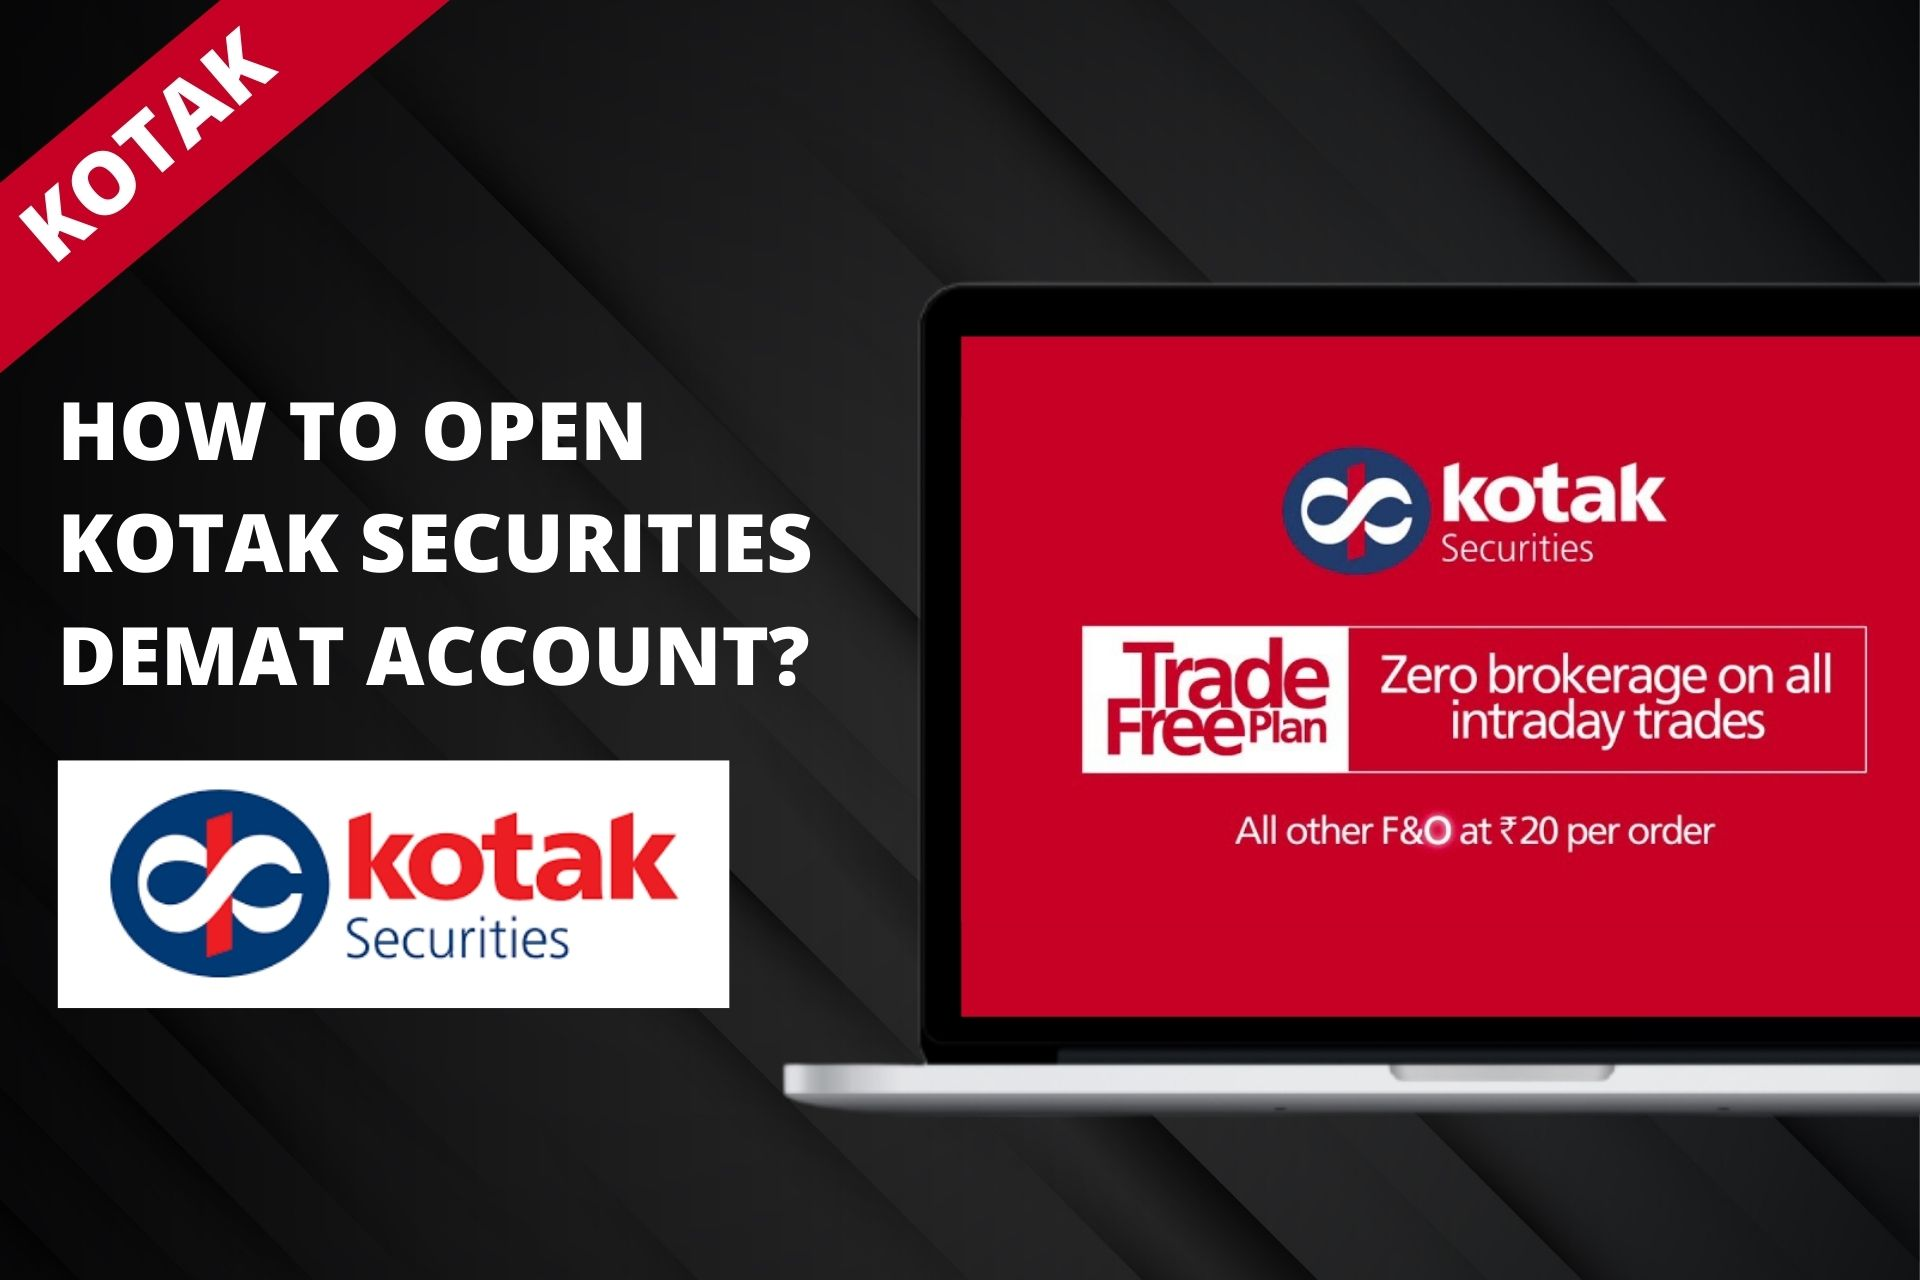 How to Open Demat Account with Kotak Securities - Trade FREE Plan cover